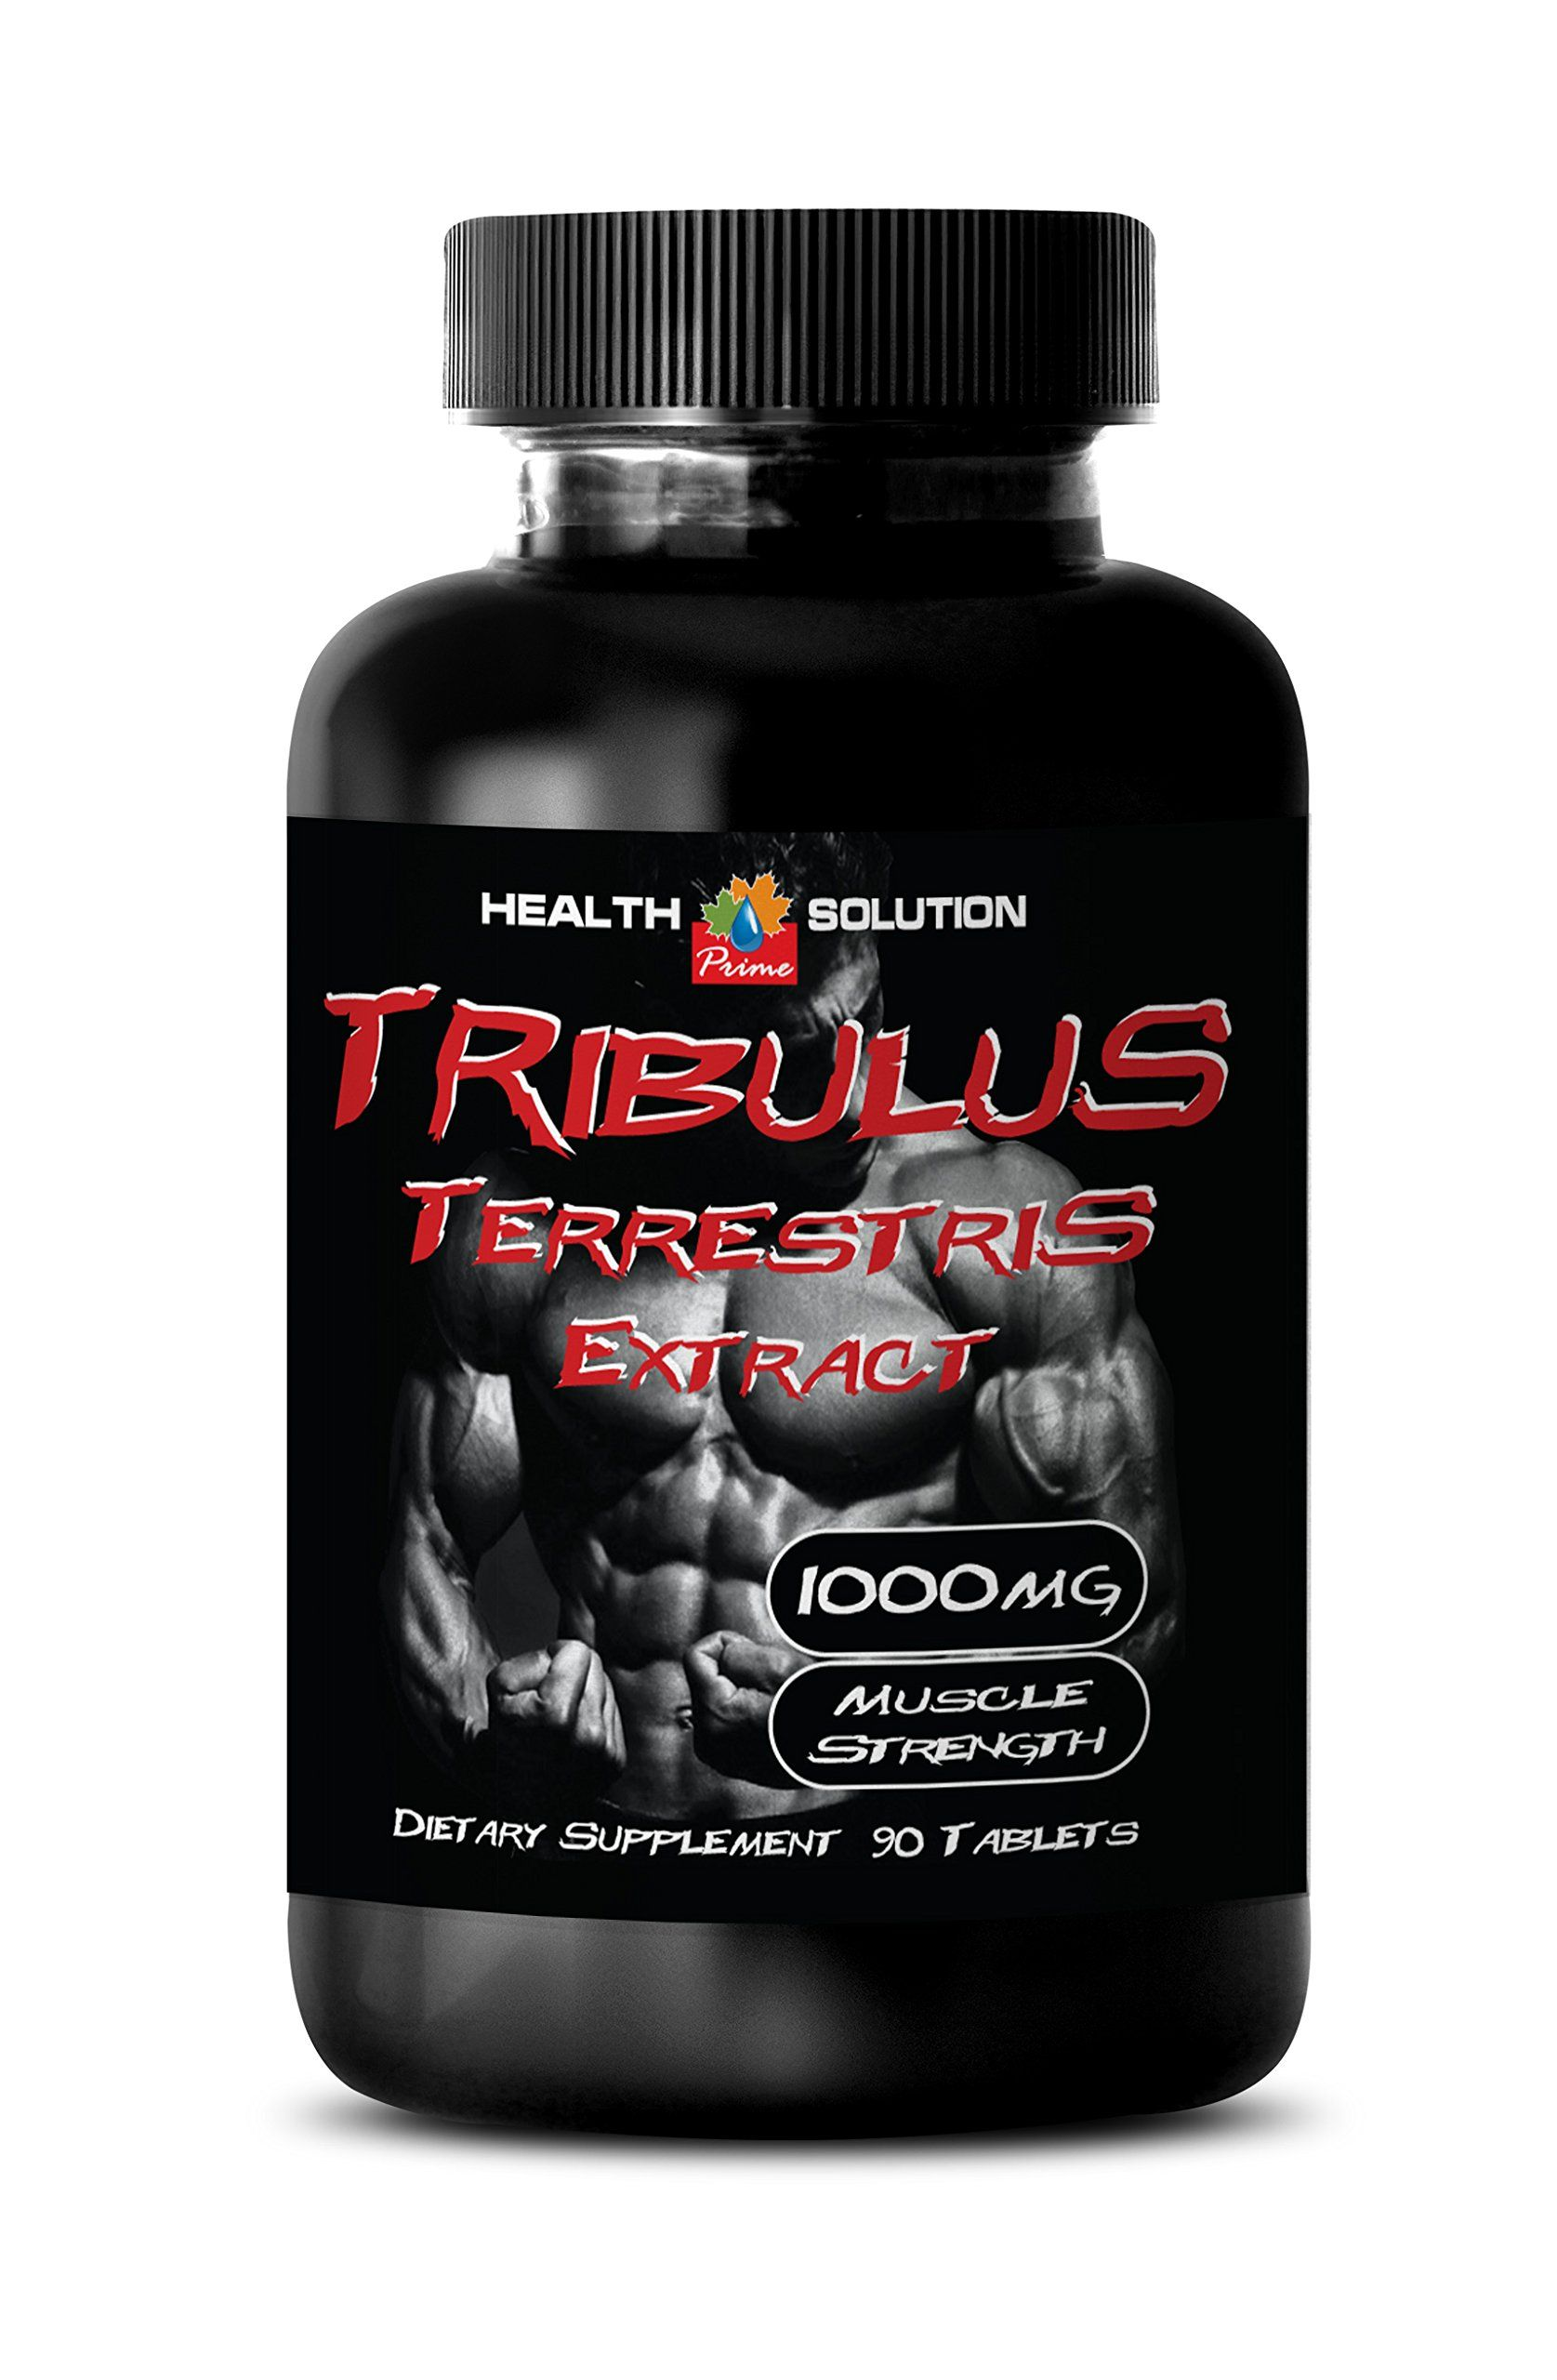 Tribulus Terrestris For Women Extract 1000mg Muscle Strength Testosterone Supplements 1 Bottle 90 Tablets